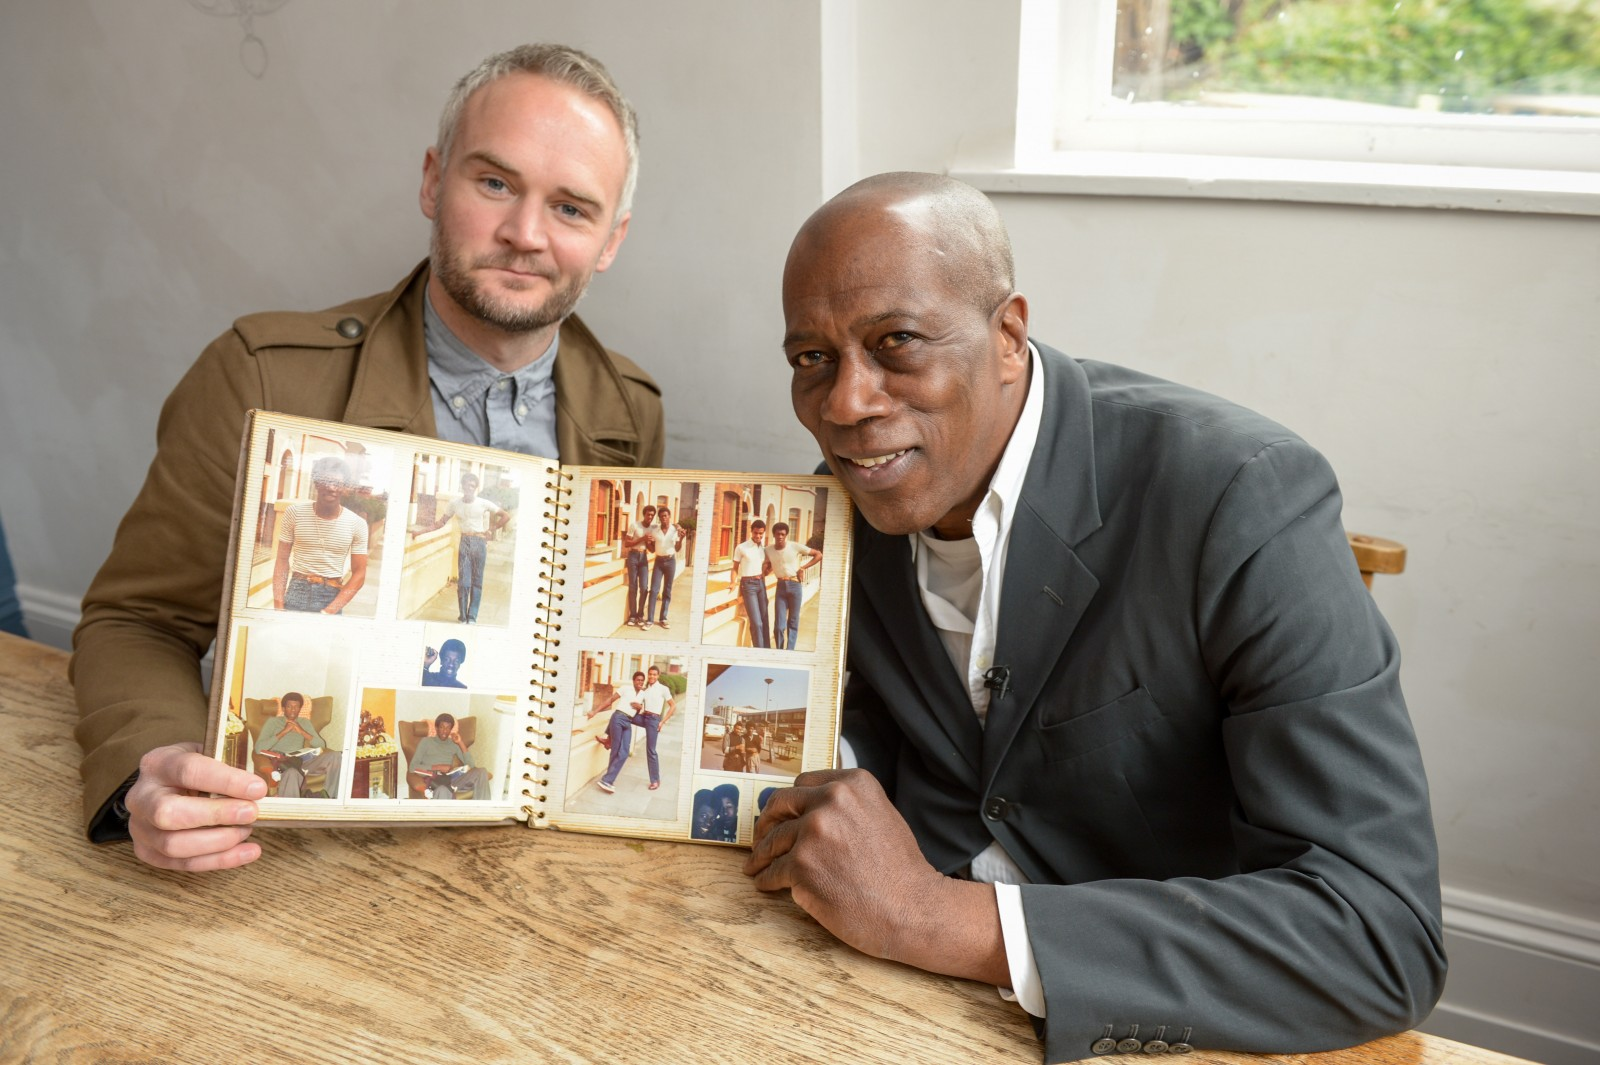 Man finds neighbour's lost photo album stuffed down the back of chair he bought online